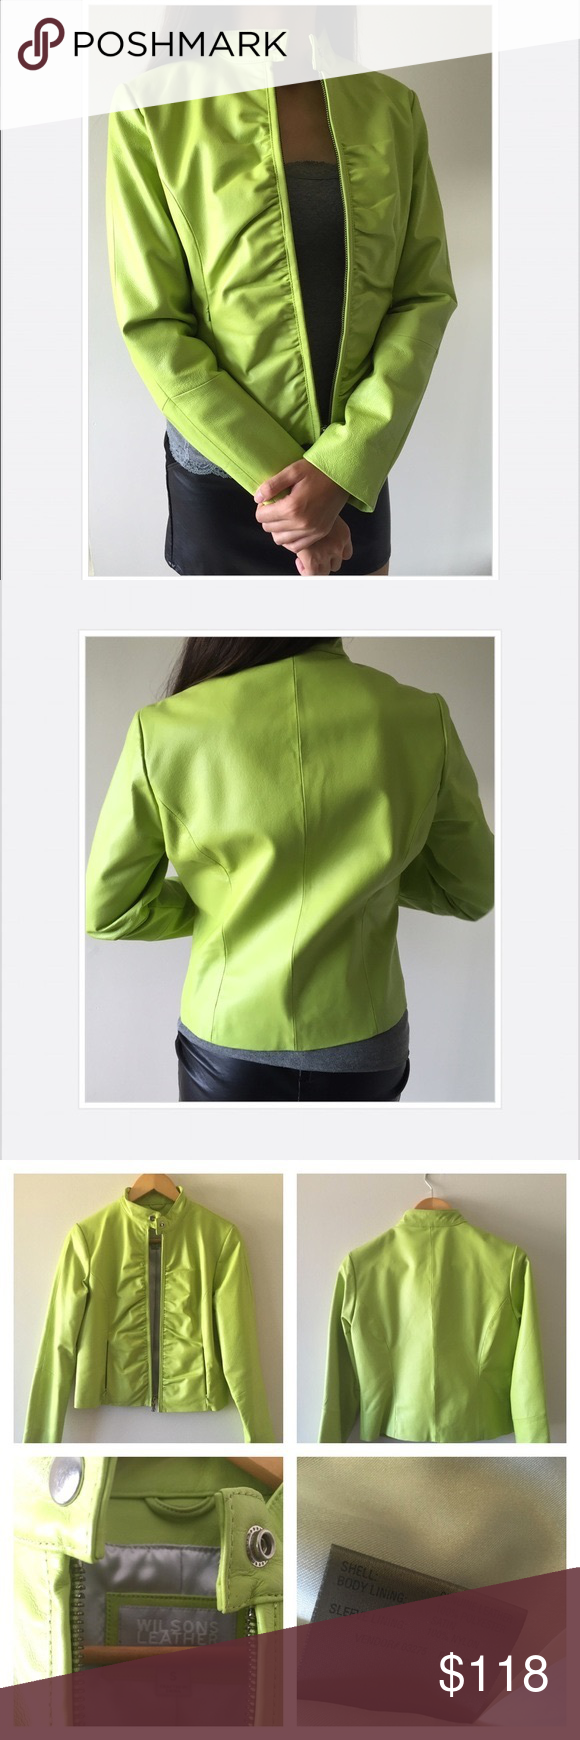 Genuine lime green leather jacket NWOT. A unique pop of